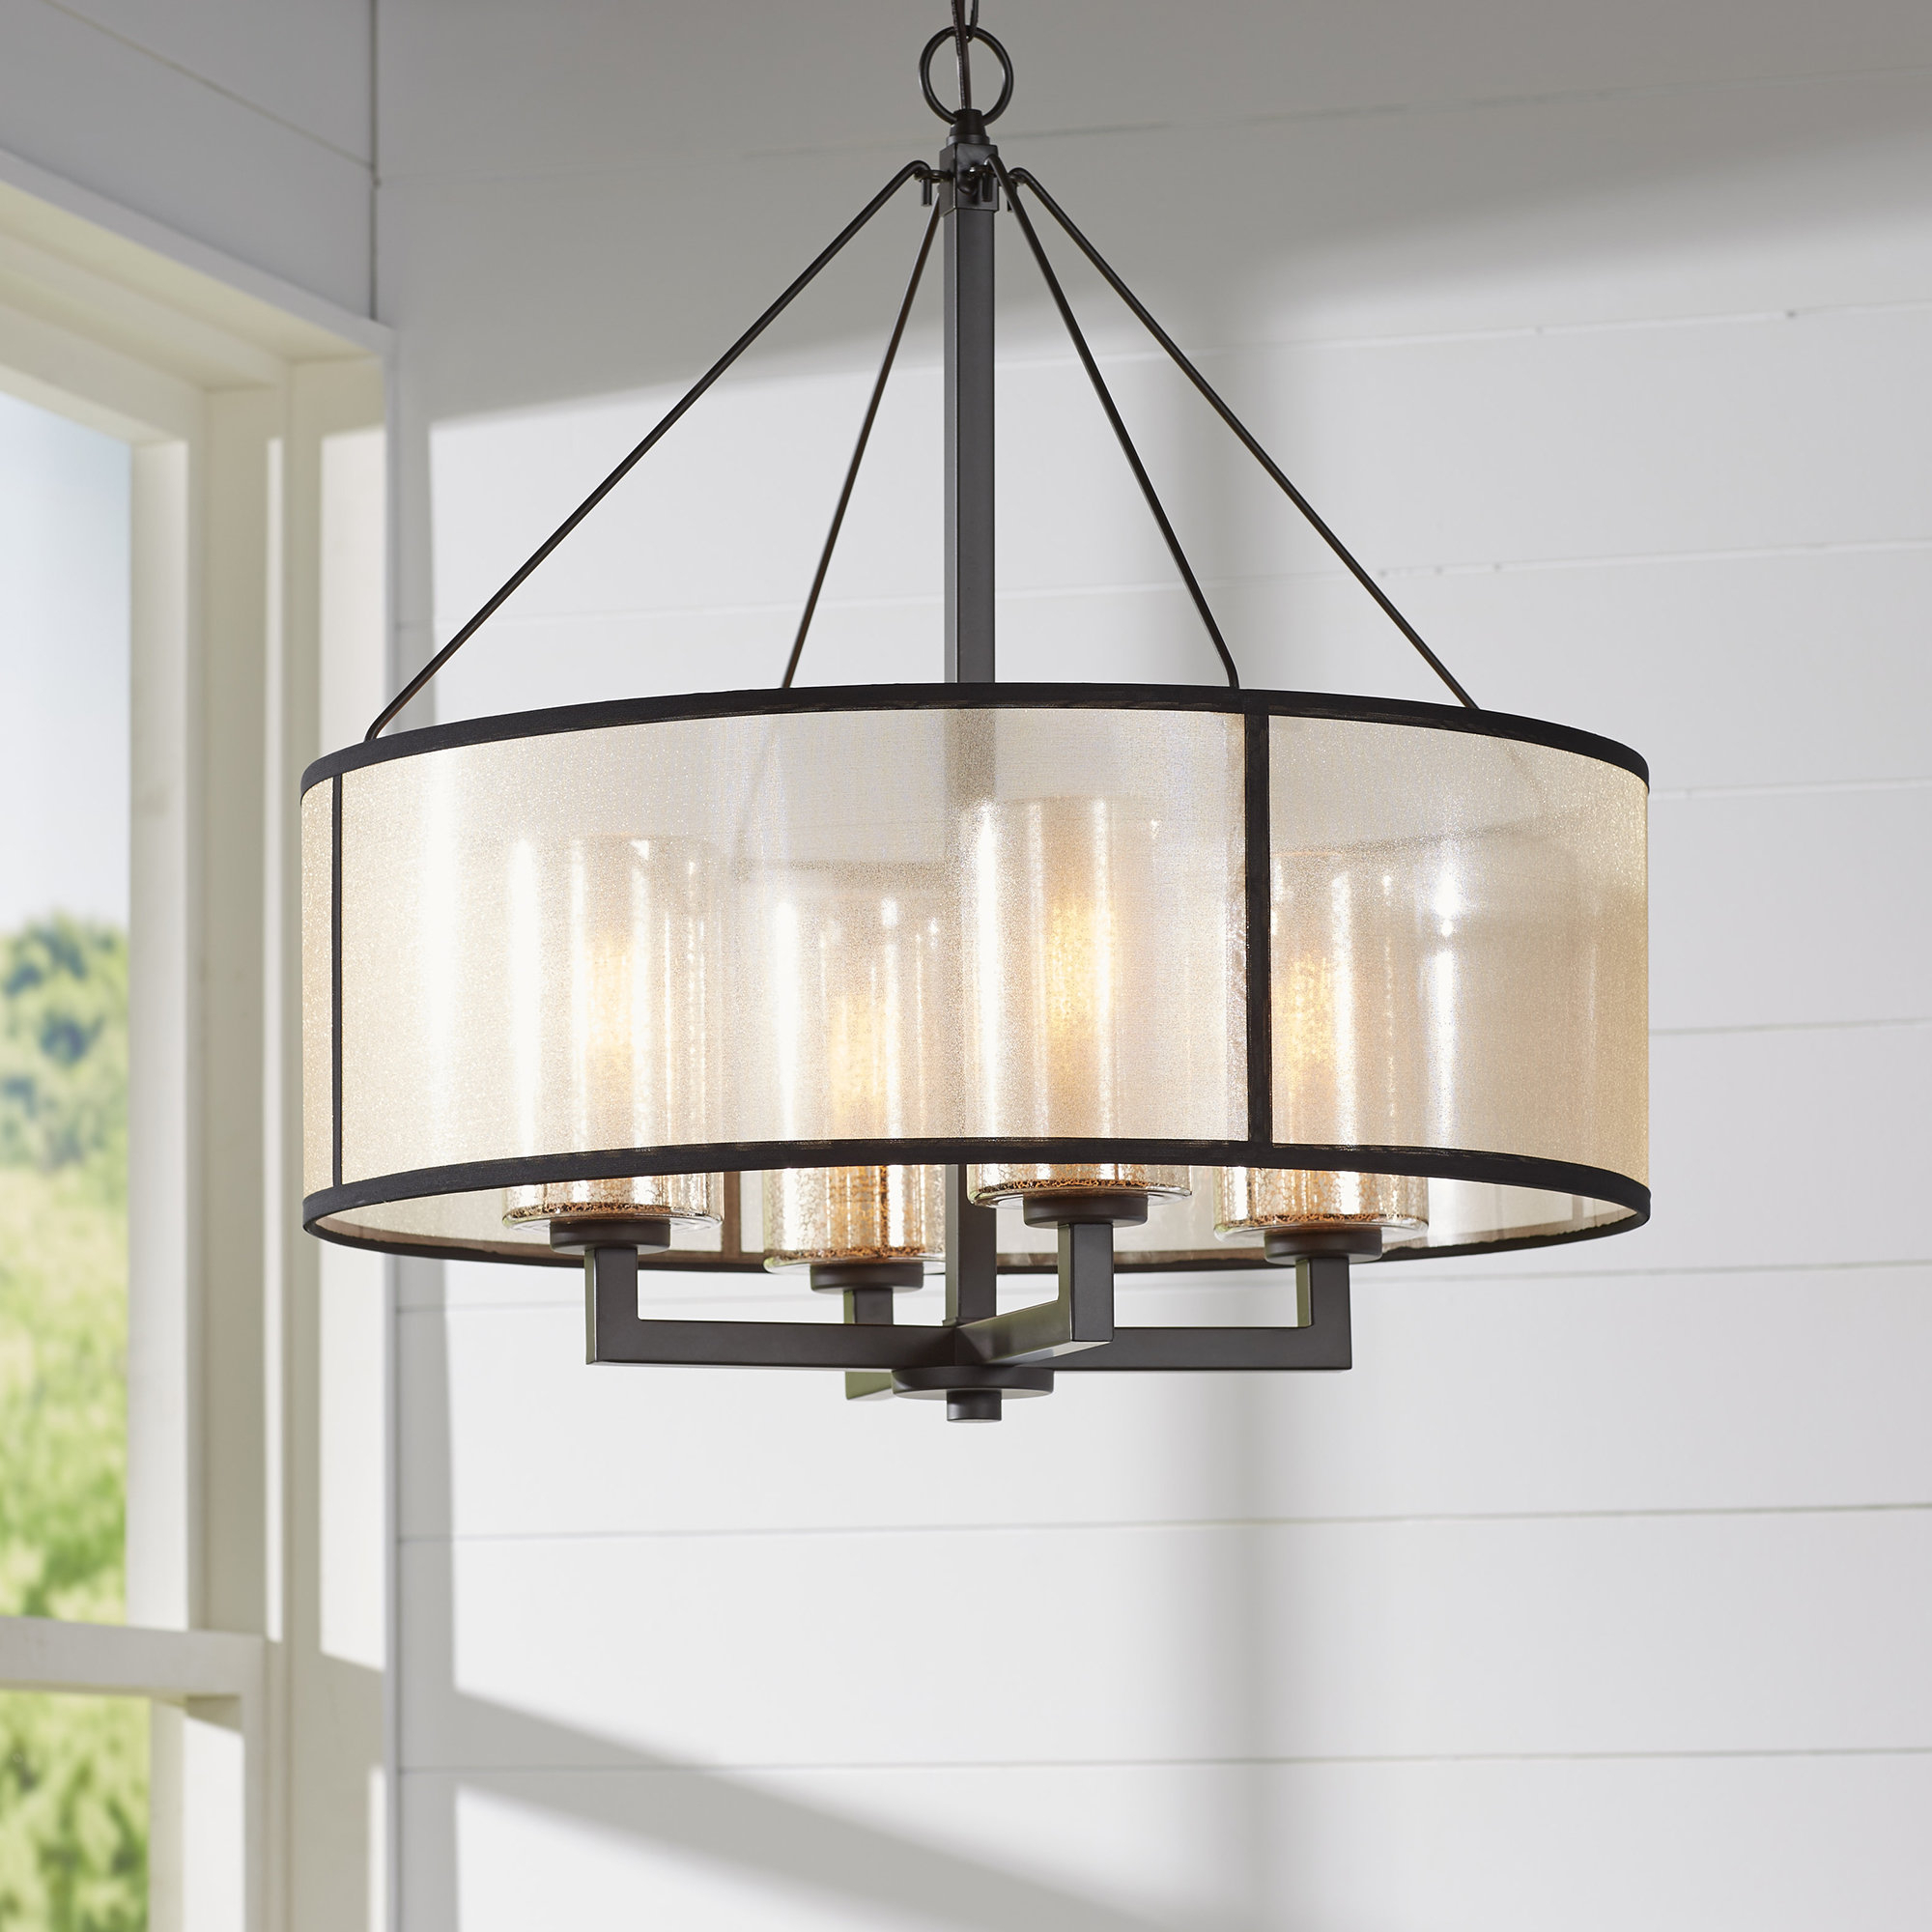 24 Inch Drum Chandelier | Wayfair Pertaining To Vincent 5 Light Drum Chandeliers (Photo 28 of 30)